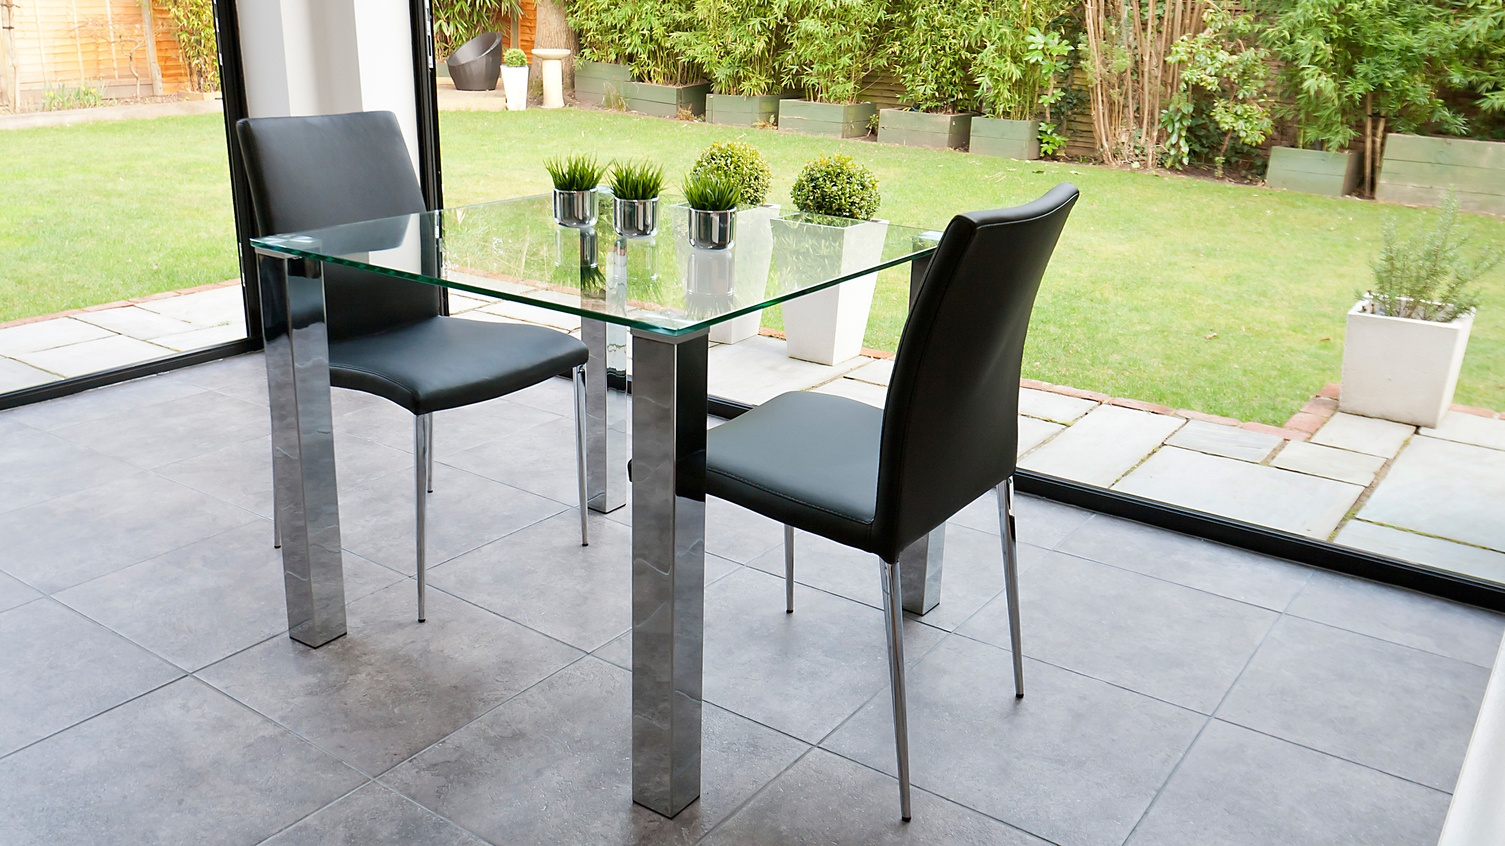 tiva glass table and elise chairs small dining set 3 - 5 Reasons to Go With Black Dining Chairs